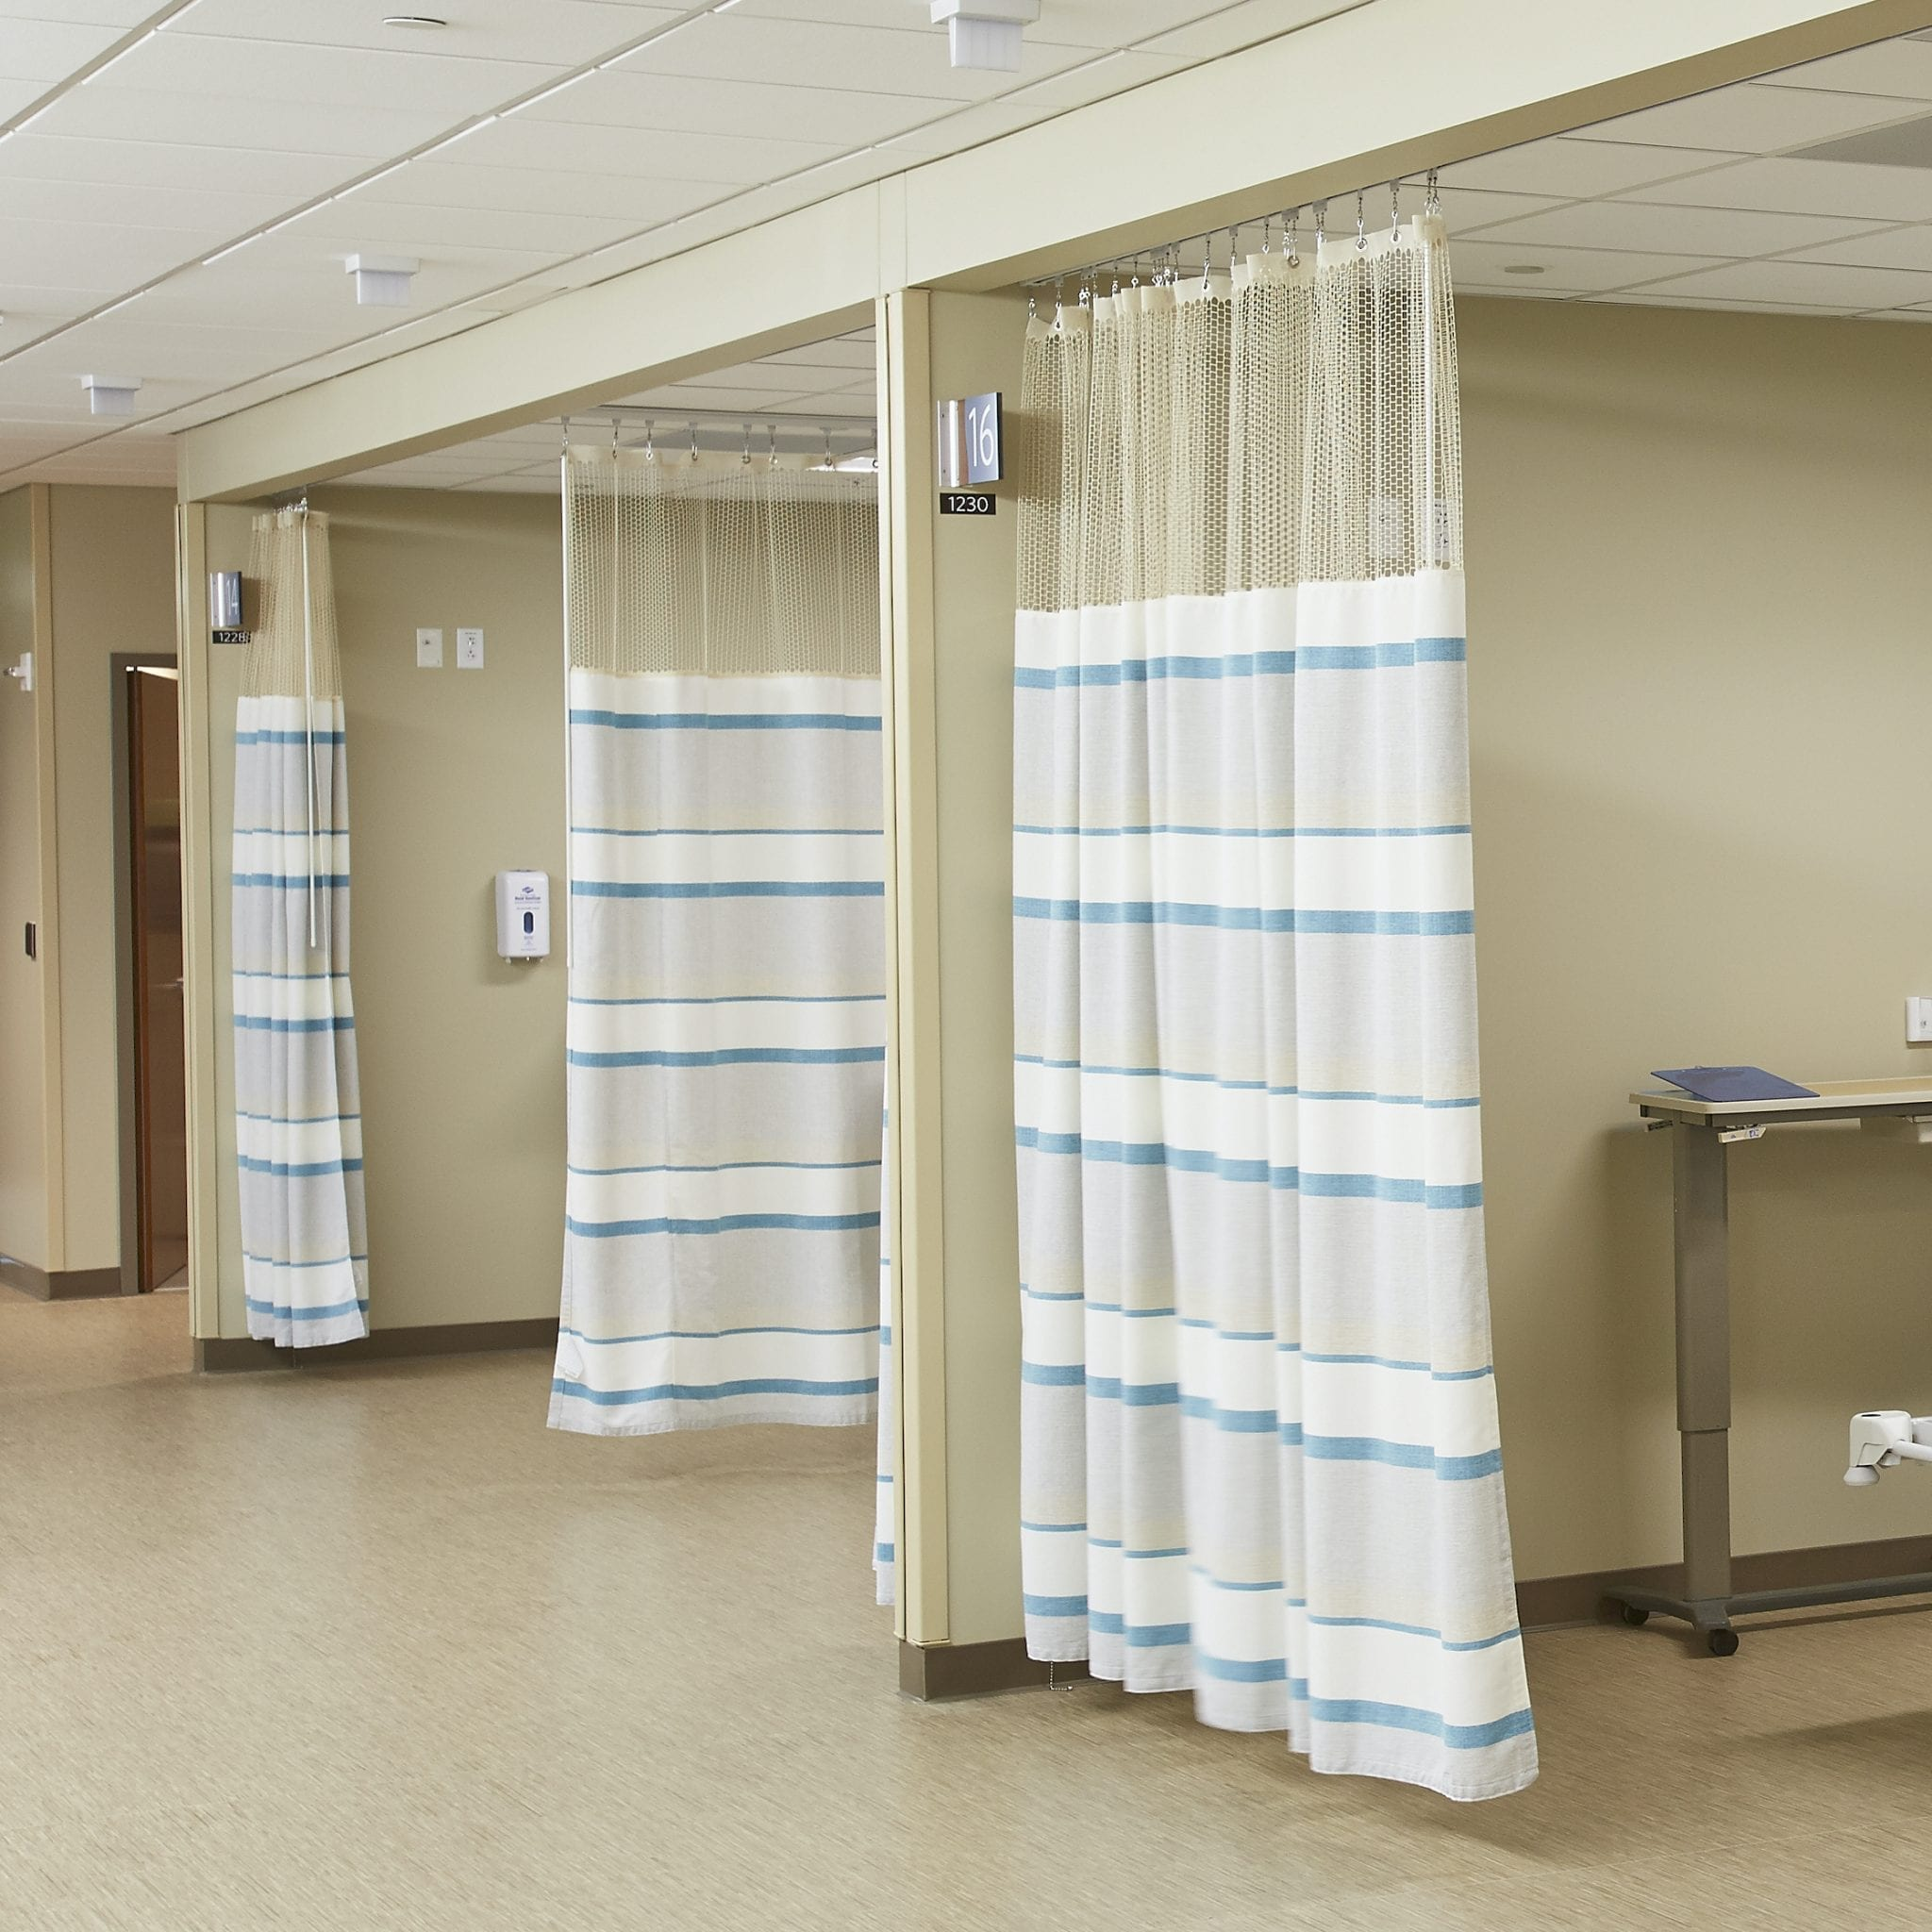 Hospital Privacy Curtains